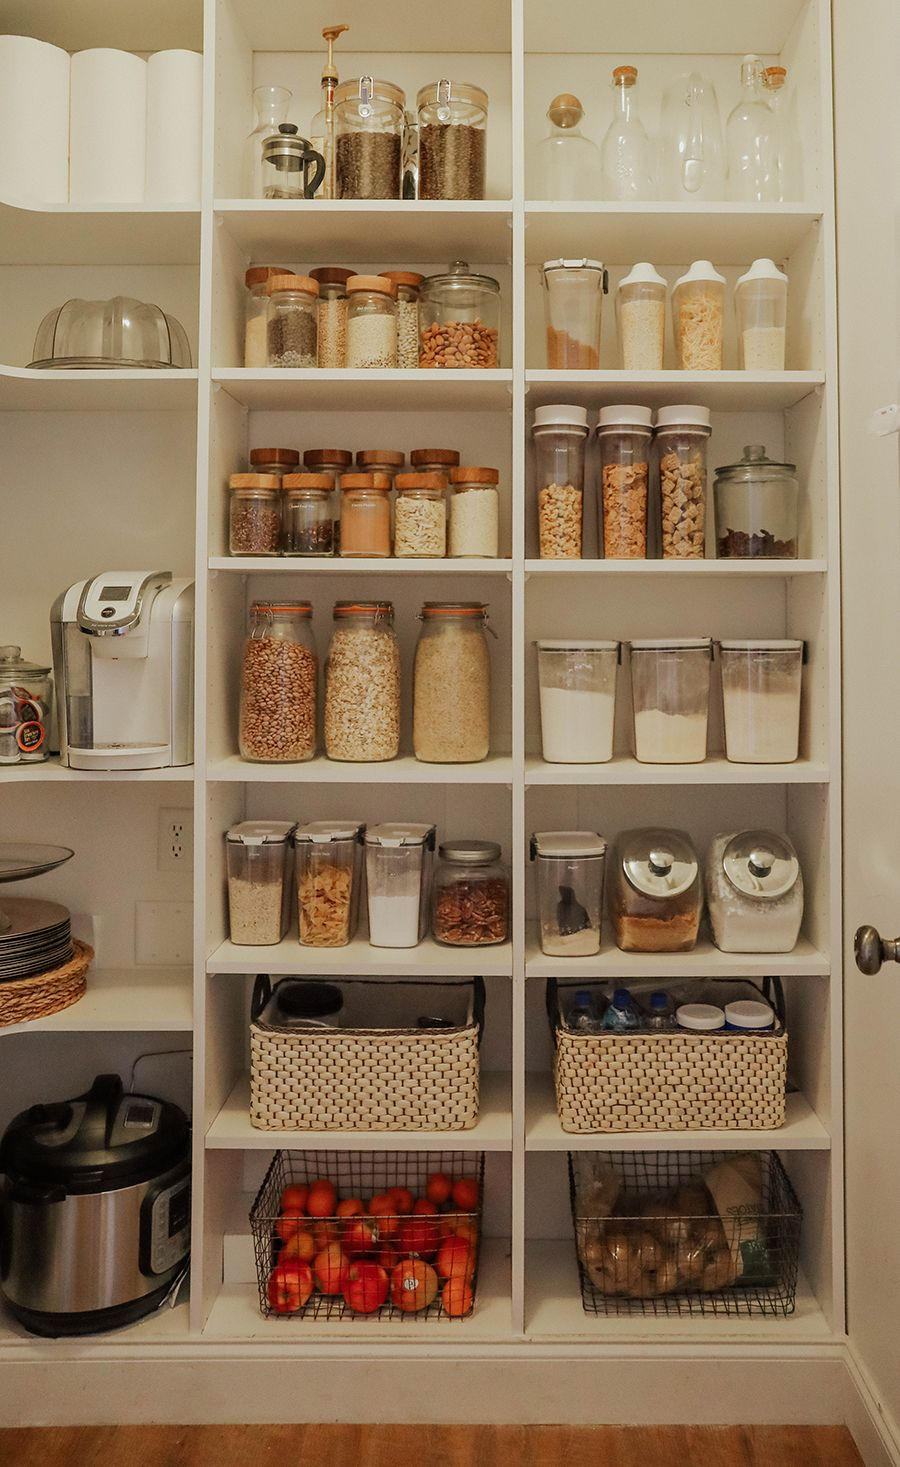 Pantry Organization Grocery Planning In Honor Of Design Kitchen Pantry Design Kitchen Organization Pantry Pantry Design